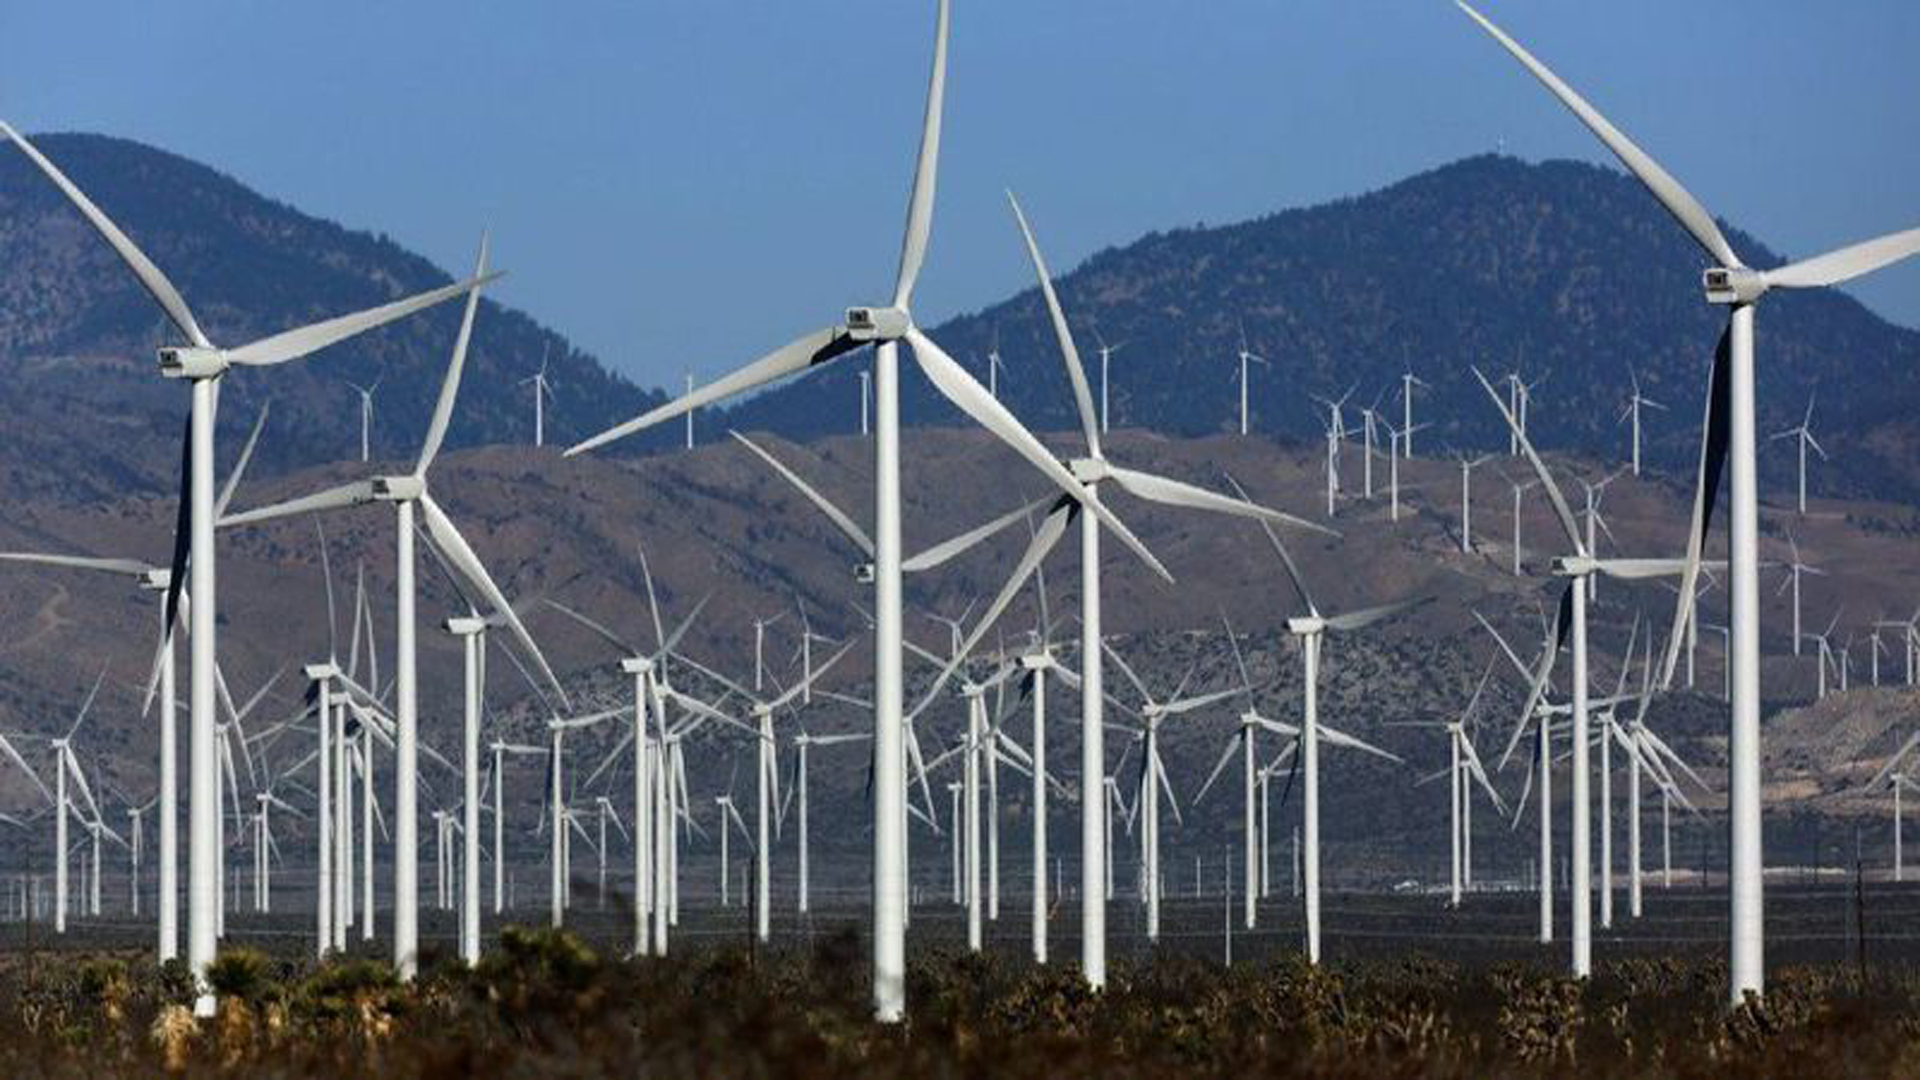 A view from Highway 14 of wind turbines in May 2013. (Credit: Irfan Khan / Los Angeles Times)